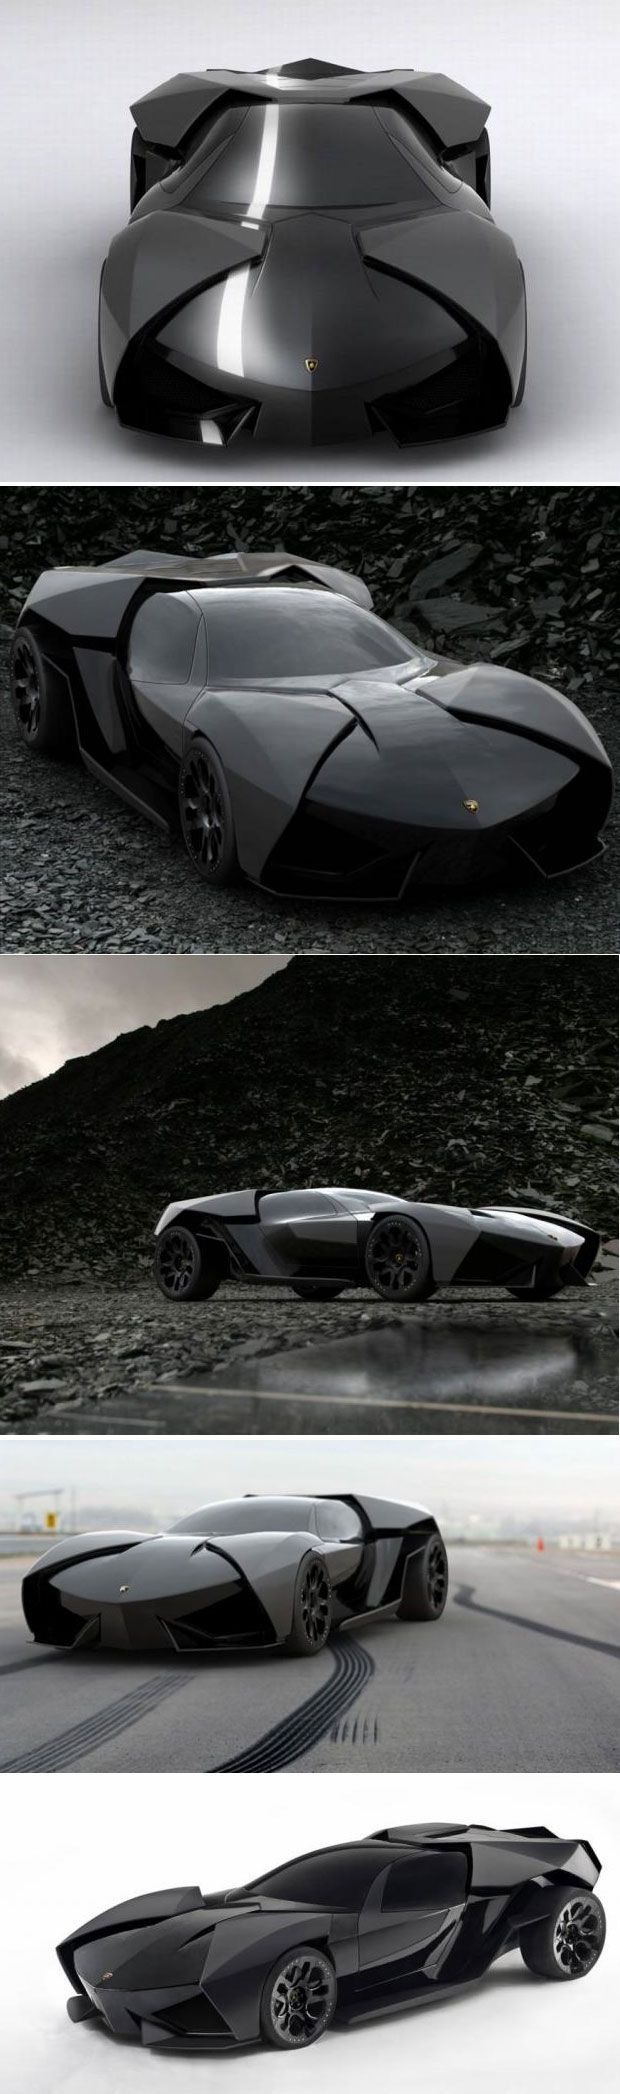 For more cool pictures, visit: http://bestcar.solutions/lambo-looks-like-the-next-batman-car-and-definitely-better-than-that-tank-they-had-in-the-recent-films-lol